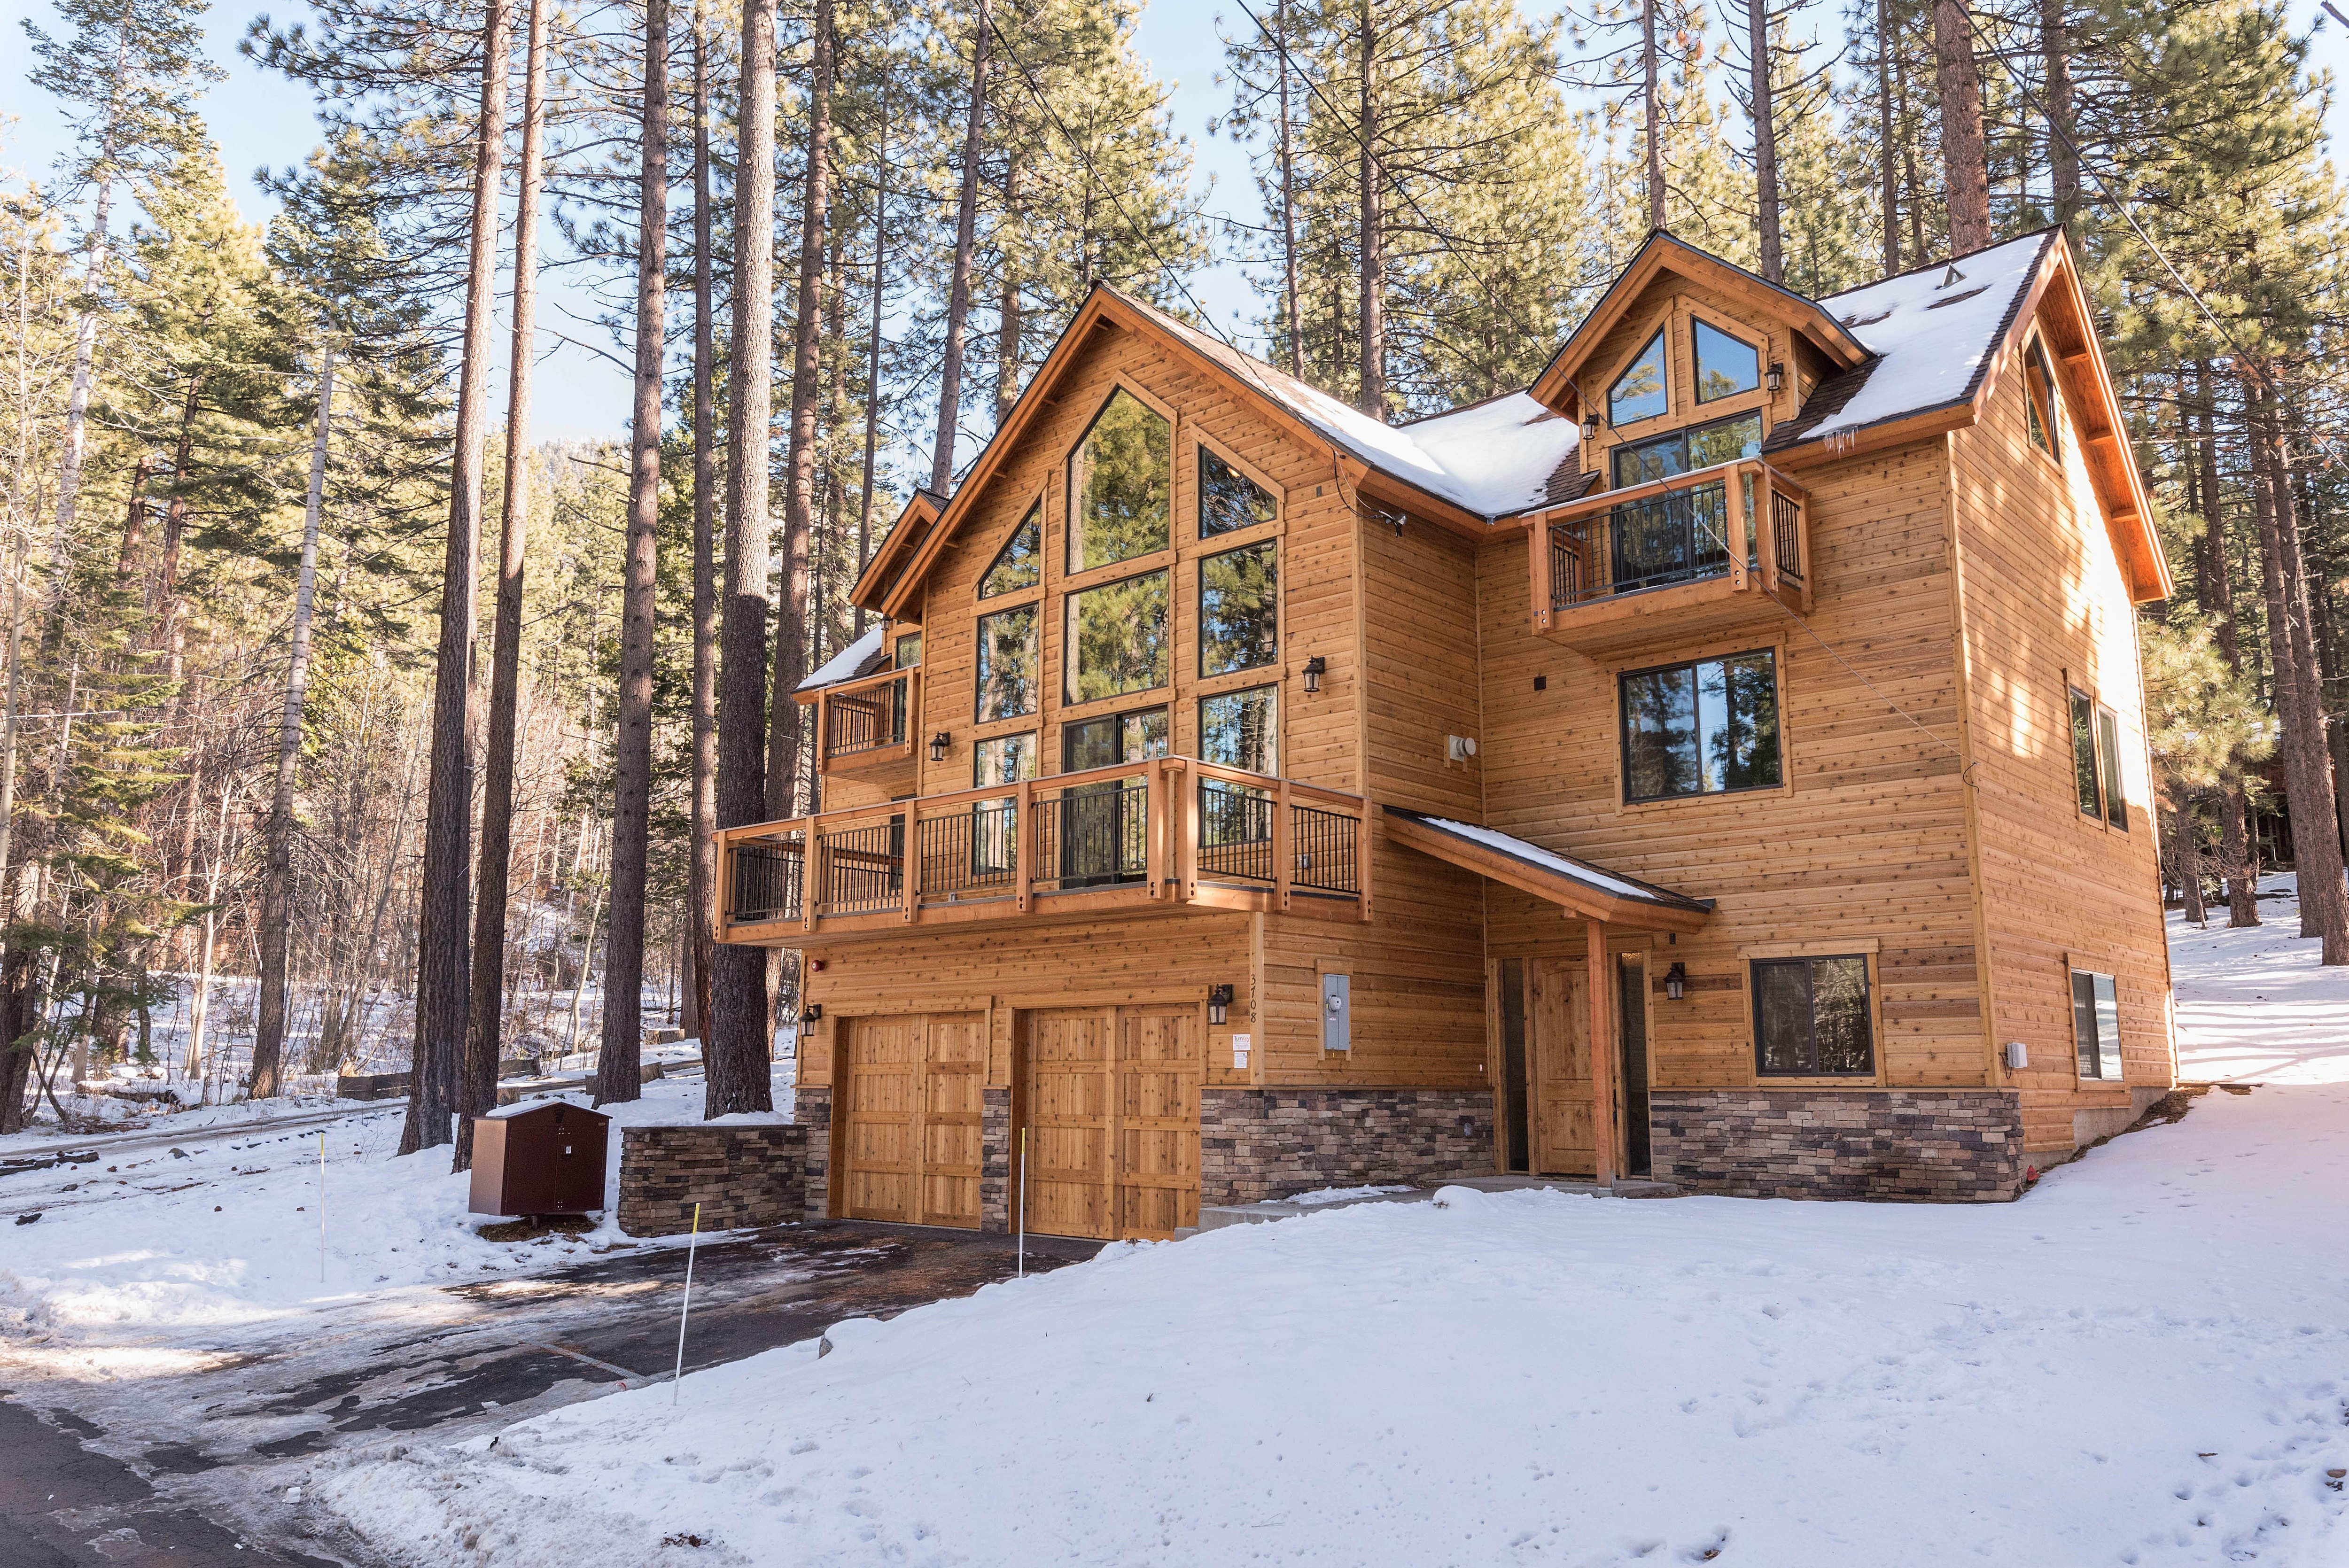 Welcome to South Lake Tahoe! This stunning property is professionally managed by TurnKey Vacation Rentals.